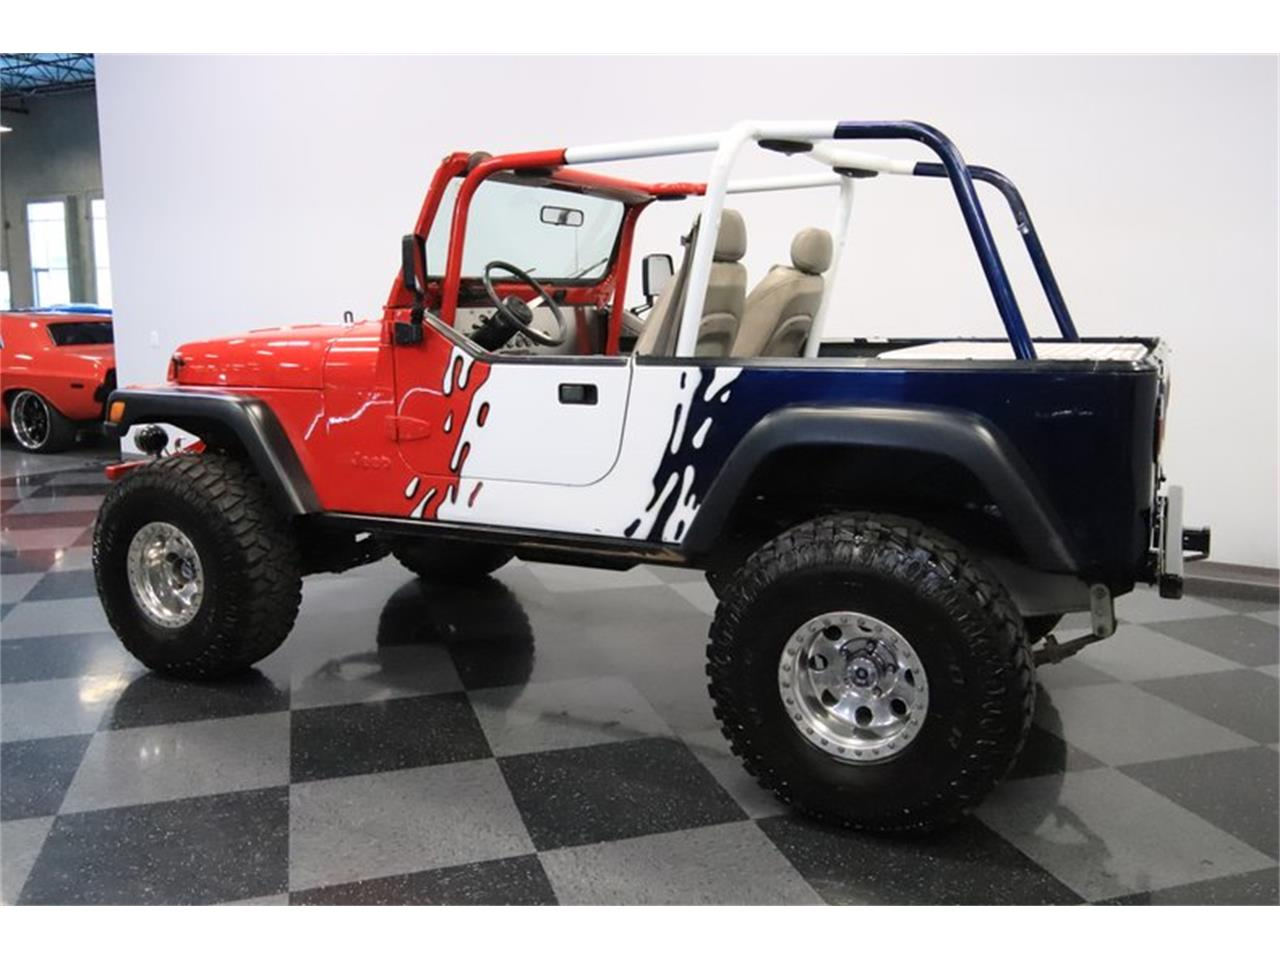 Large Picture of 1983 Jeep CJ8 Scrambler located in Arizona - $36,995.00 - Q5HM